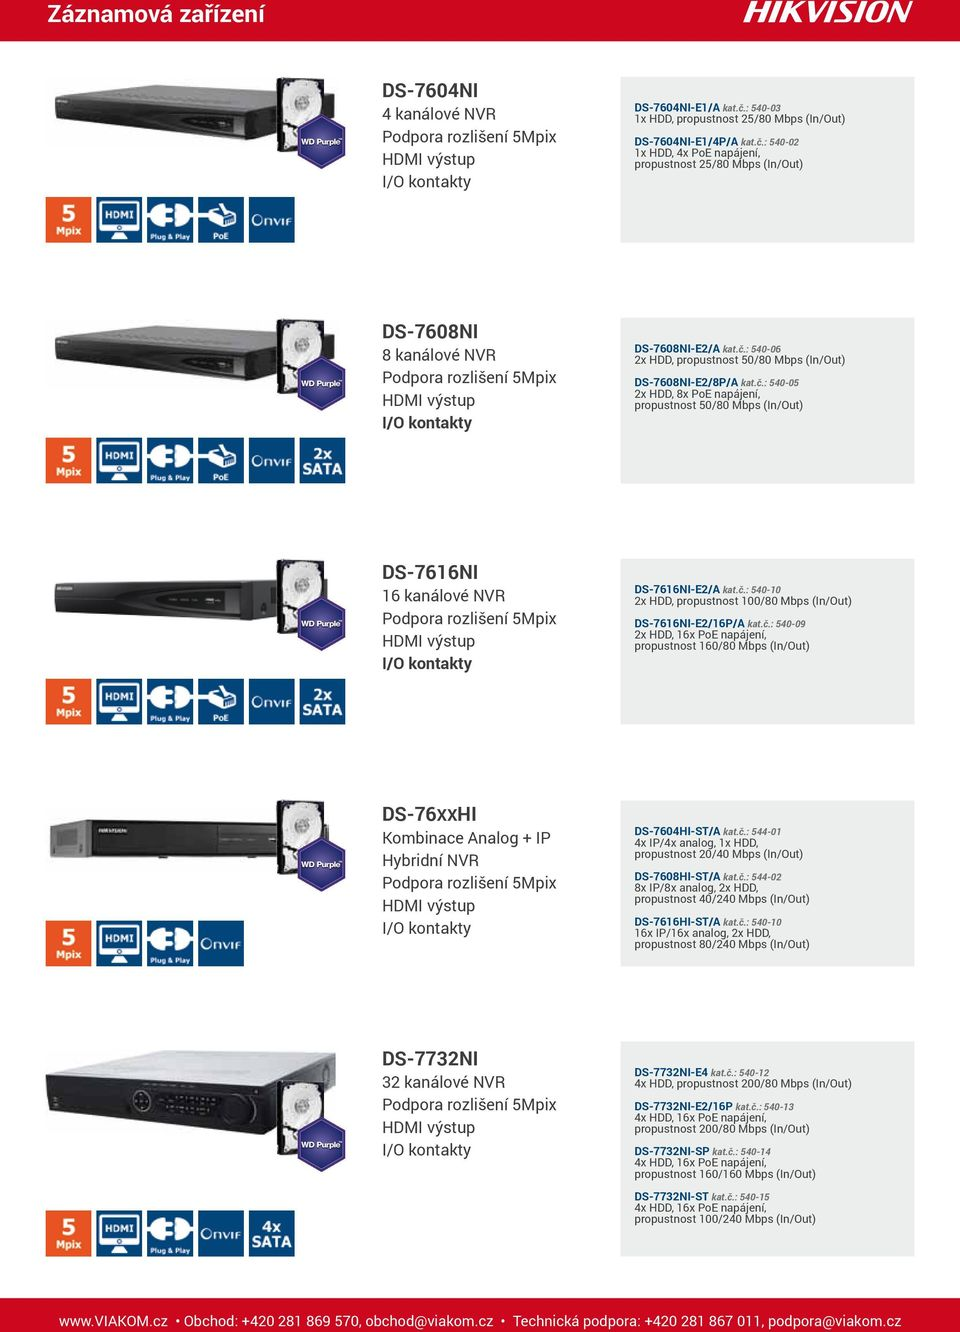 č.: 540-05 2x HDD, 8x, propustnost 50/80 Mbps (In/Out) DS-7616NI-E2/A kat.č.: 540-10 2x HDD, propustnost 100/80 Mbps (In/Out) DS-7616NI-E2/16P/A kat.č.: 540-09 2x HDD, 16x, propustnost 160/80 Mbps (In/Out) DS-7604HI-ST/A kat.